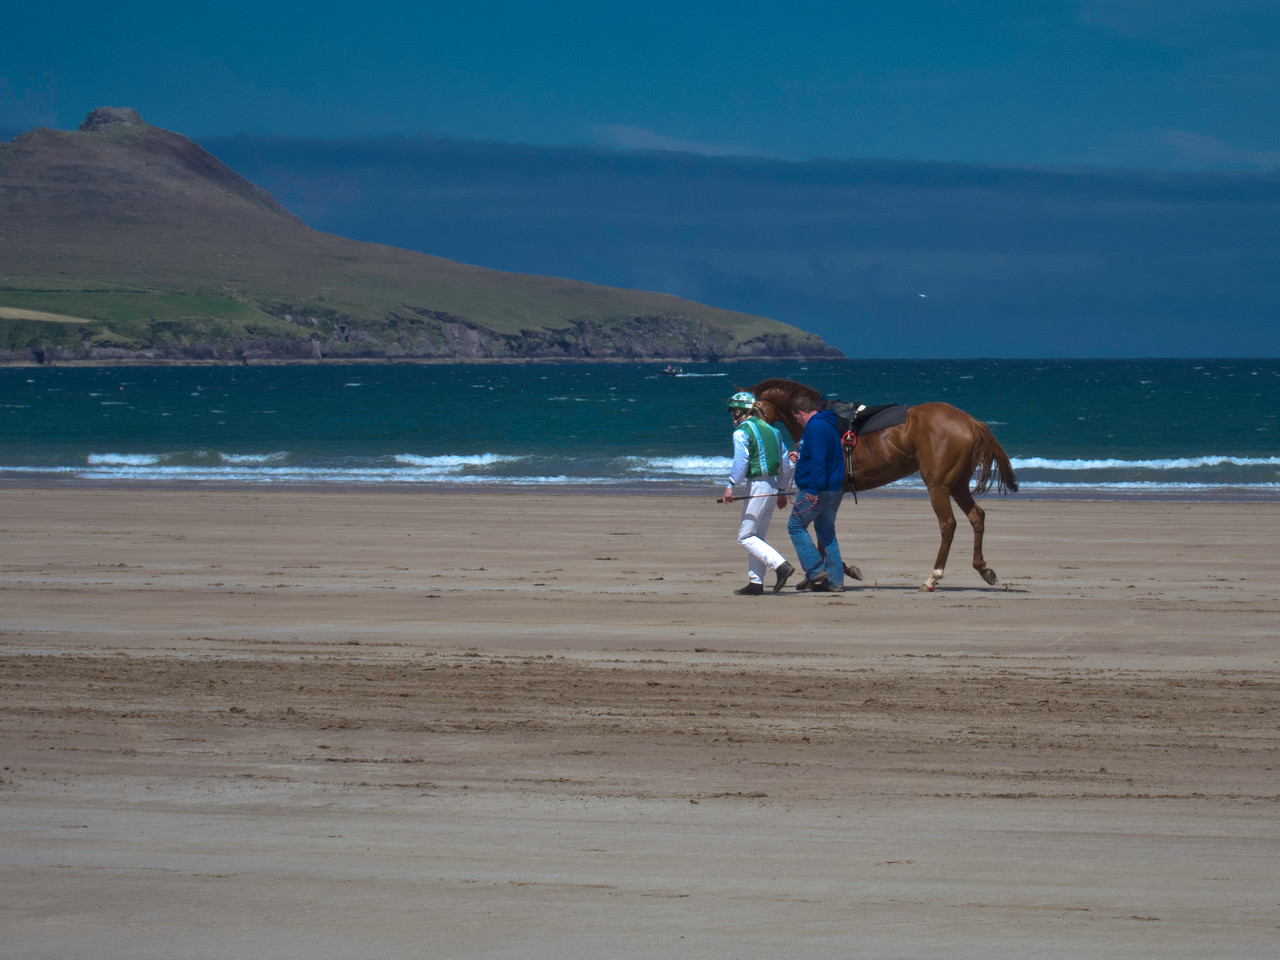 """""""The Long Walk Home """" The jockey fell off his horse at the start of the race,  This walk must have felt a long one,  <br /> <br /> Beál Bán, believed to be the most westerly racecourse in Europe, Horse racing took place on Saturday June 4th and on the beach (adjacent to Ballyferriter village) in the Dingle Peninsula"""